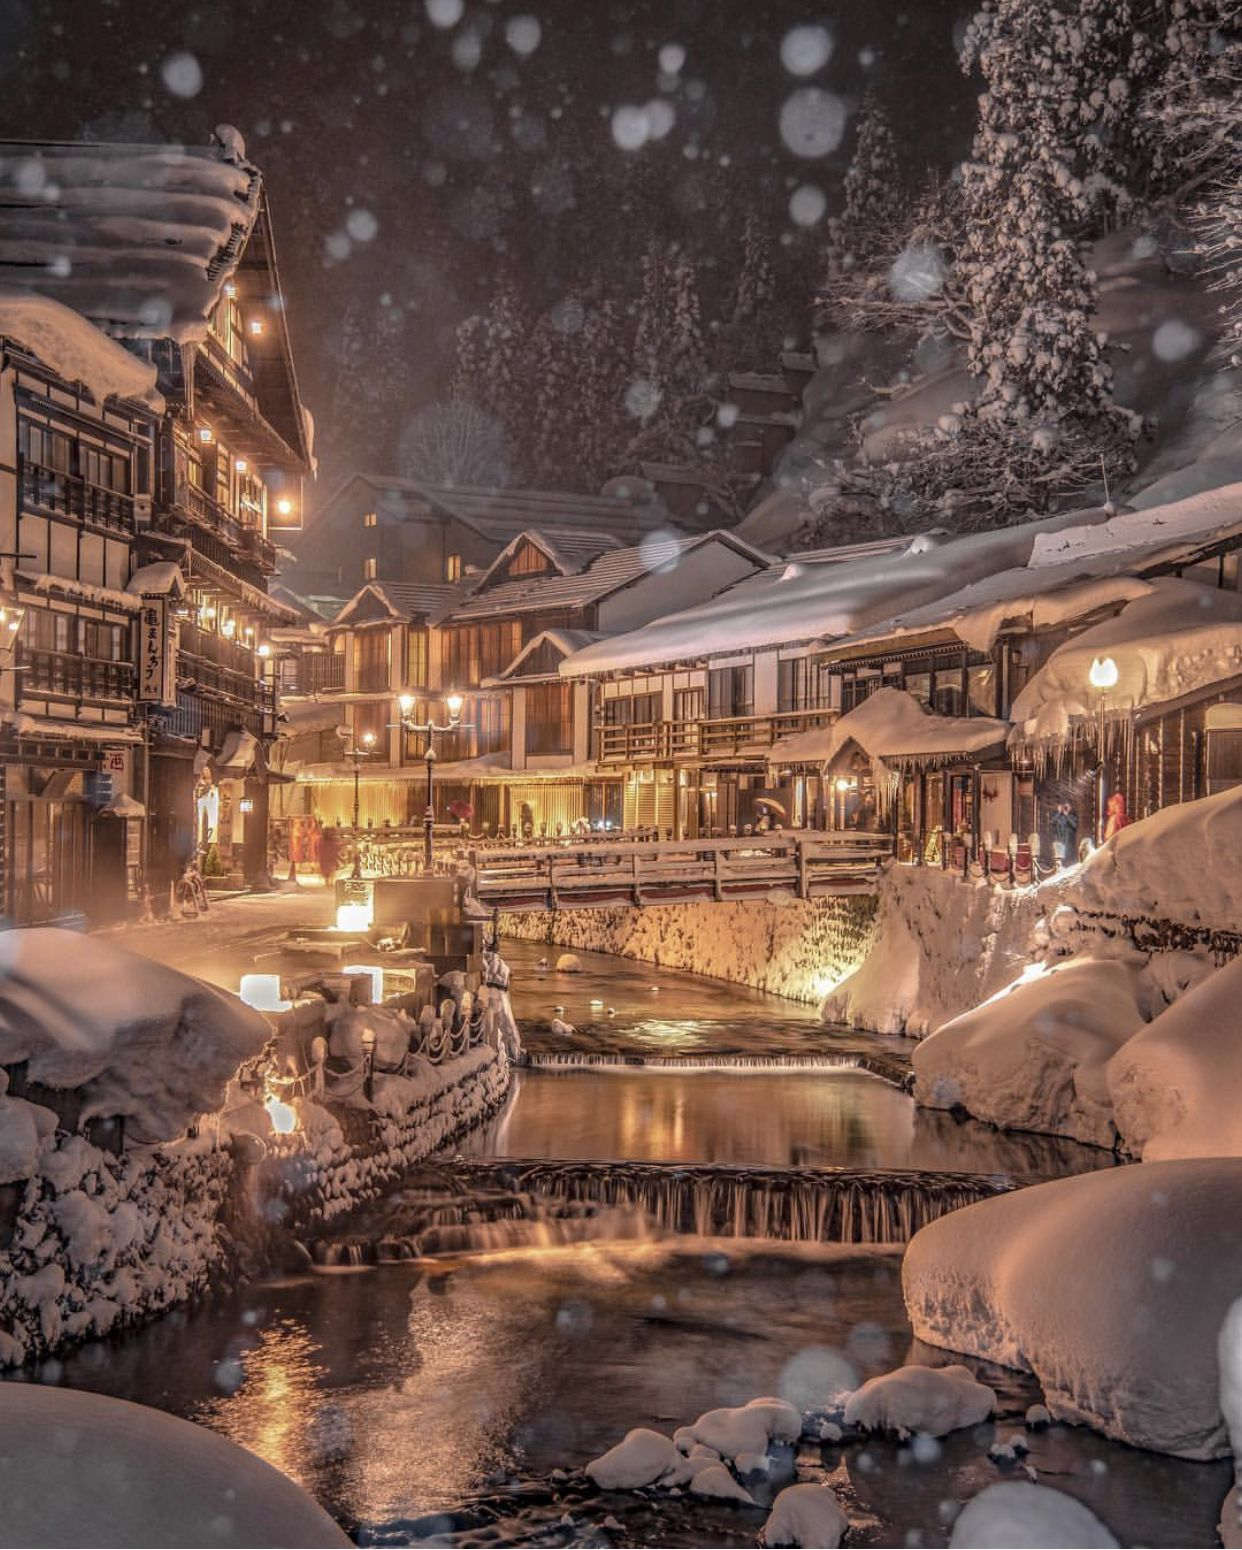 Ginzan Onsen Japan - A magical place you should ad